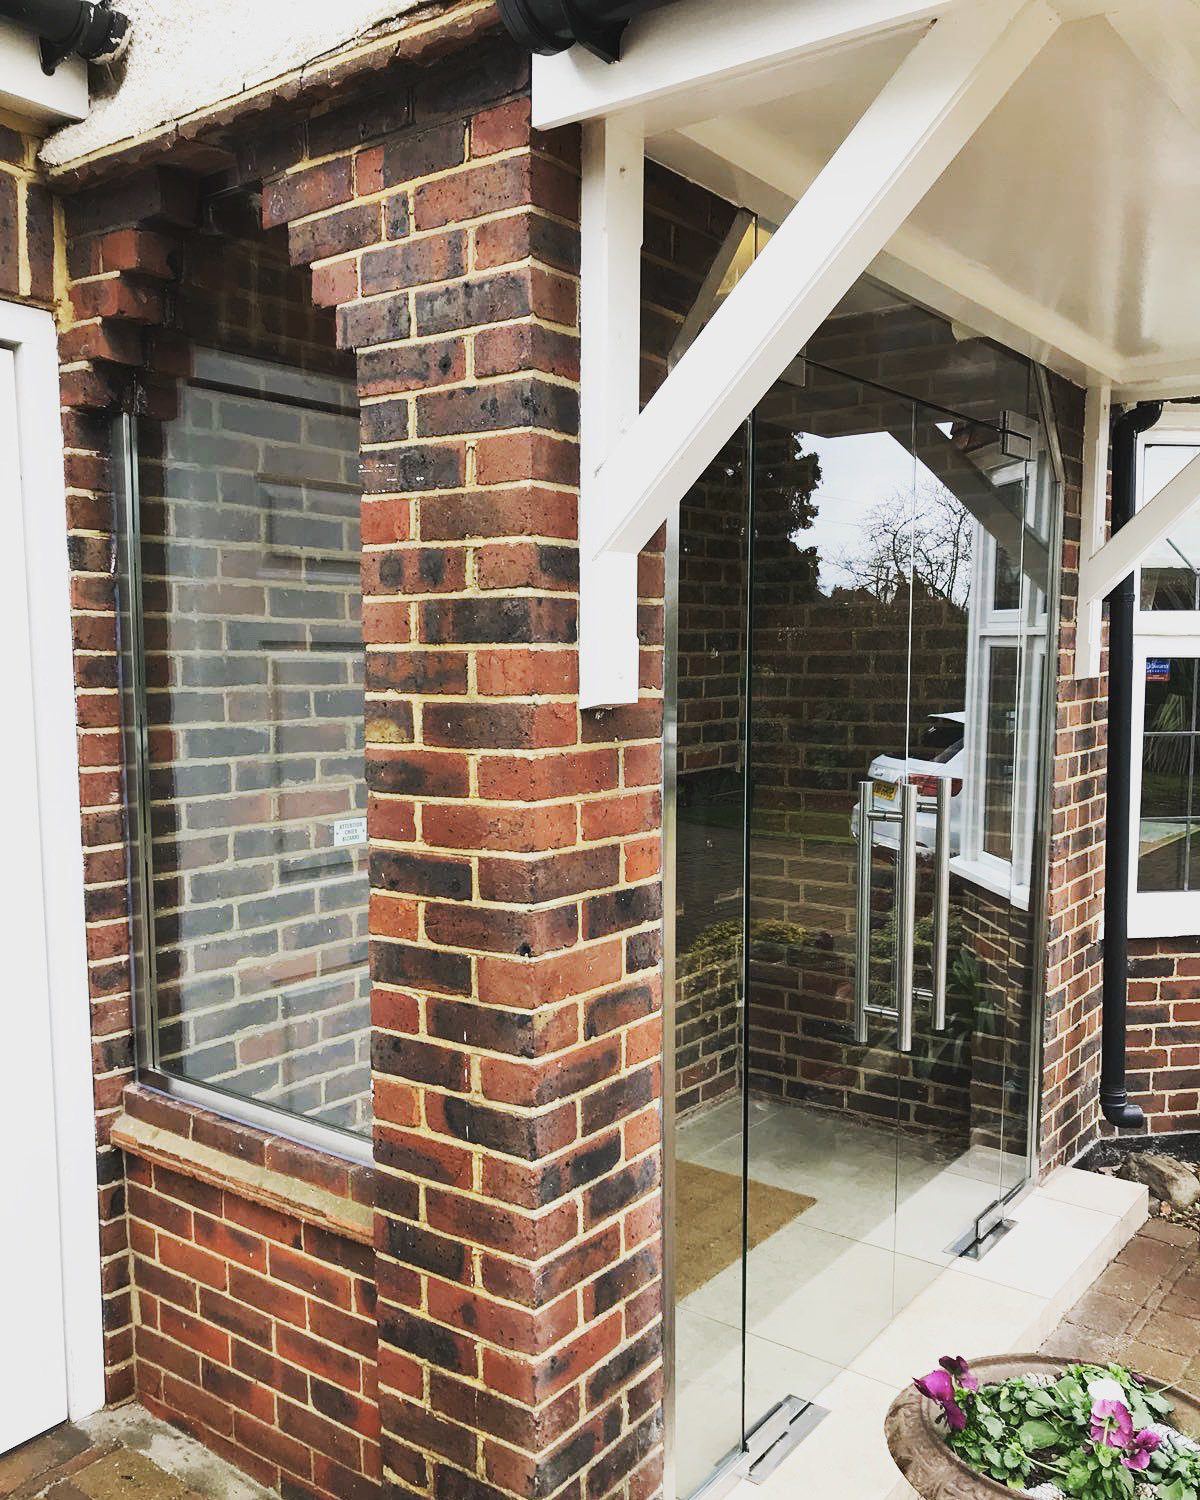 The benefits of a glass porch